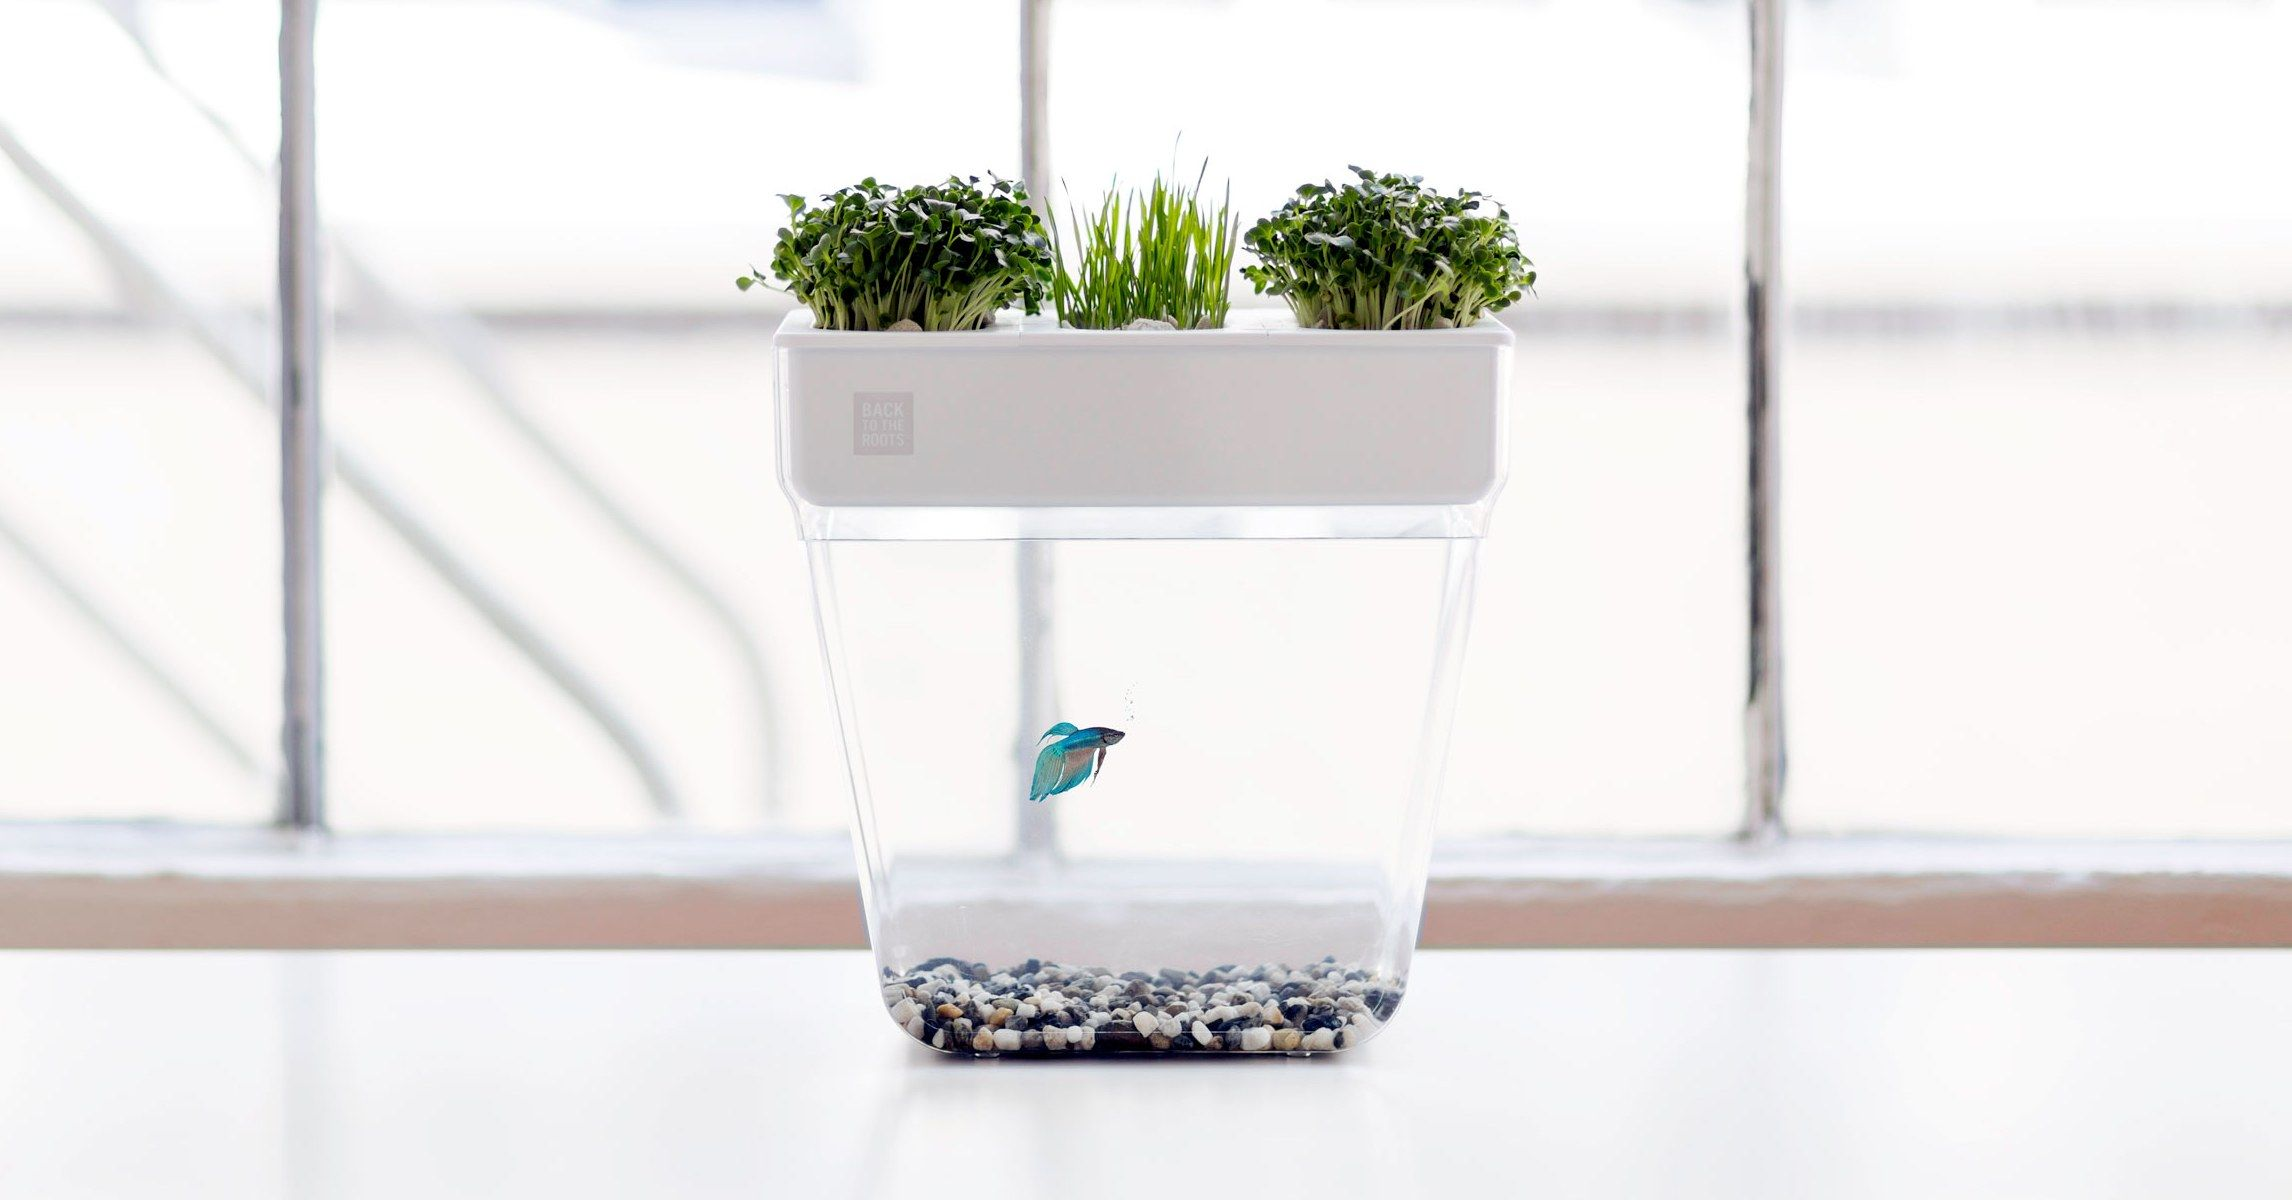 This Stress Free Fish Tank Lets Plants Do the Cleaning